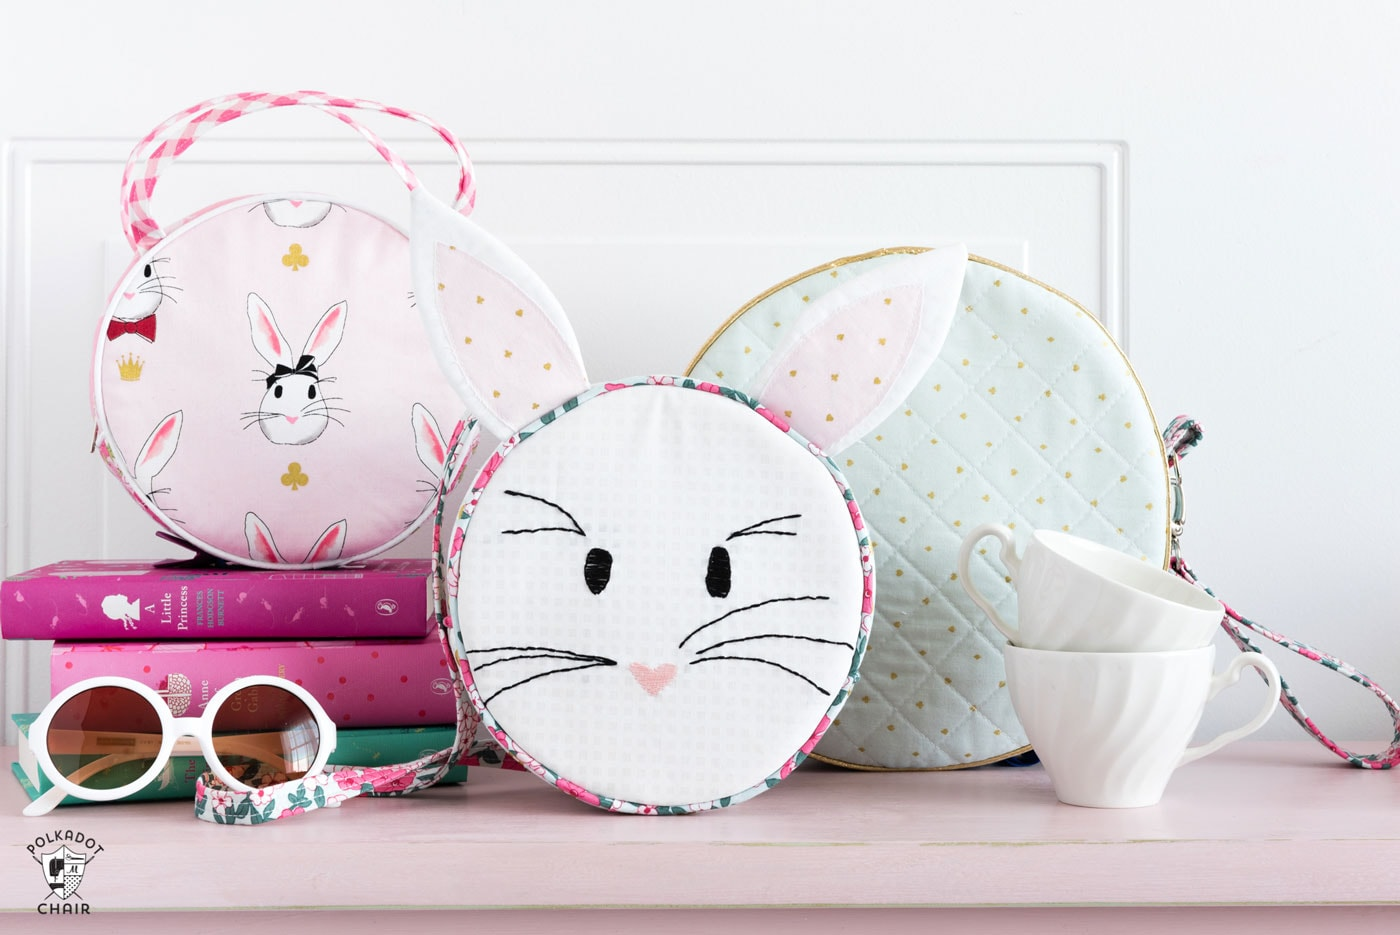 Introducing the Alice Bag Sewing Pattern. A whimsical and versatile purse sewing pattern featuring bunny ears! It can be made in two sizes and features 4 different handle style options including cross body straps!